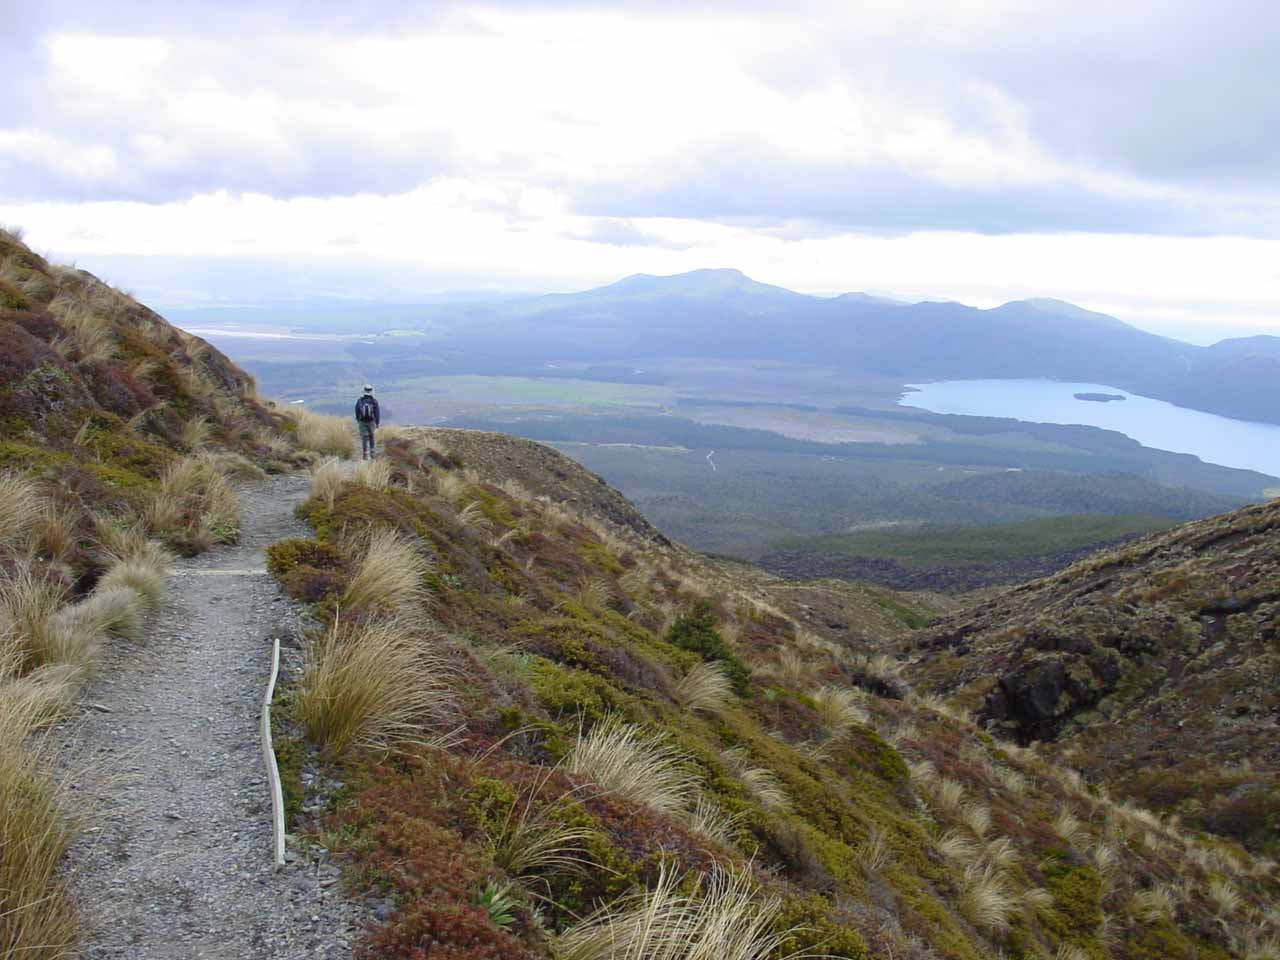 The main reason why we spent a few nights at the Chateau Tongariro was to do the Tongariro Crossing hike.  It was a good thing we were flexible because we had to wait out bad weather